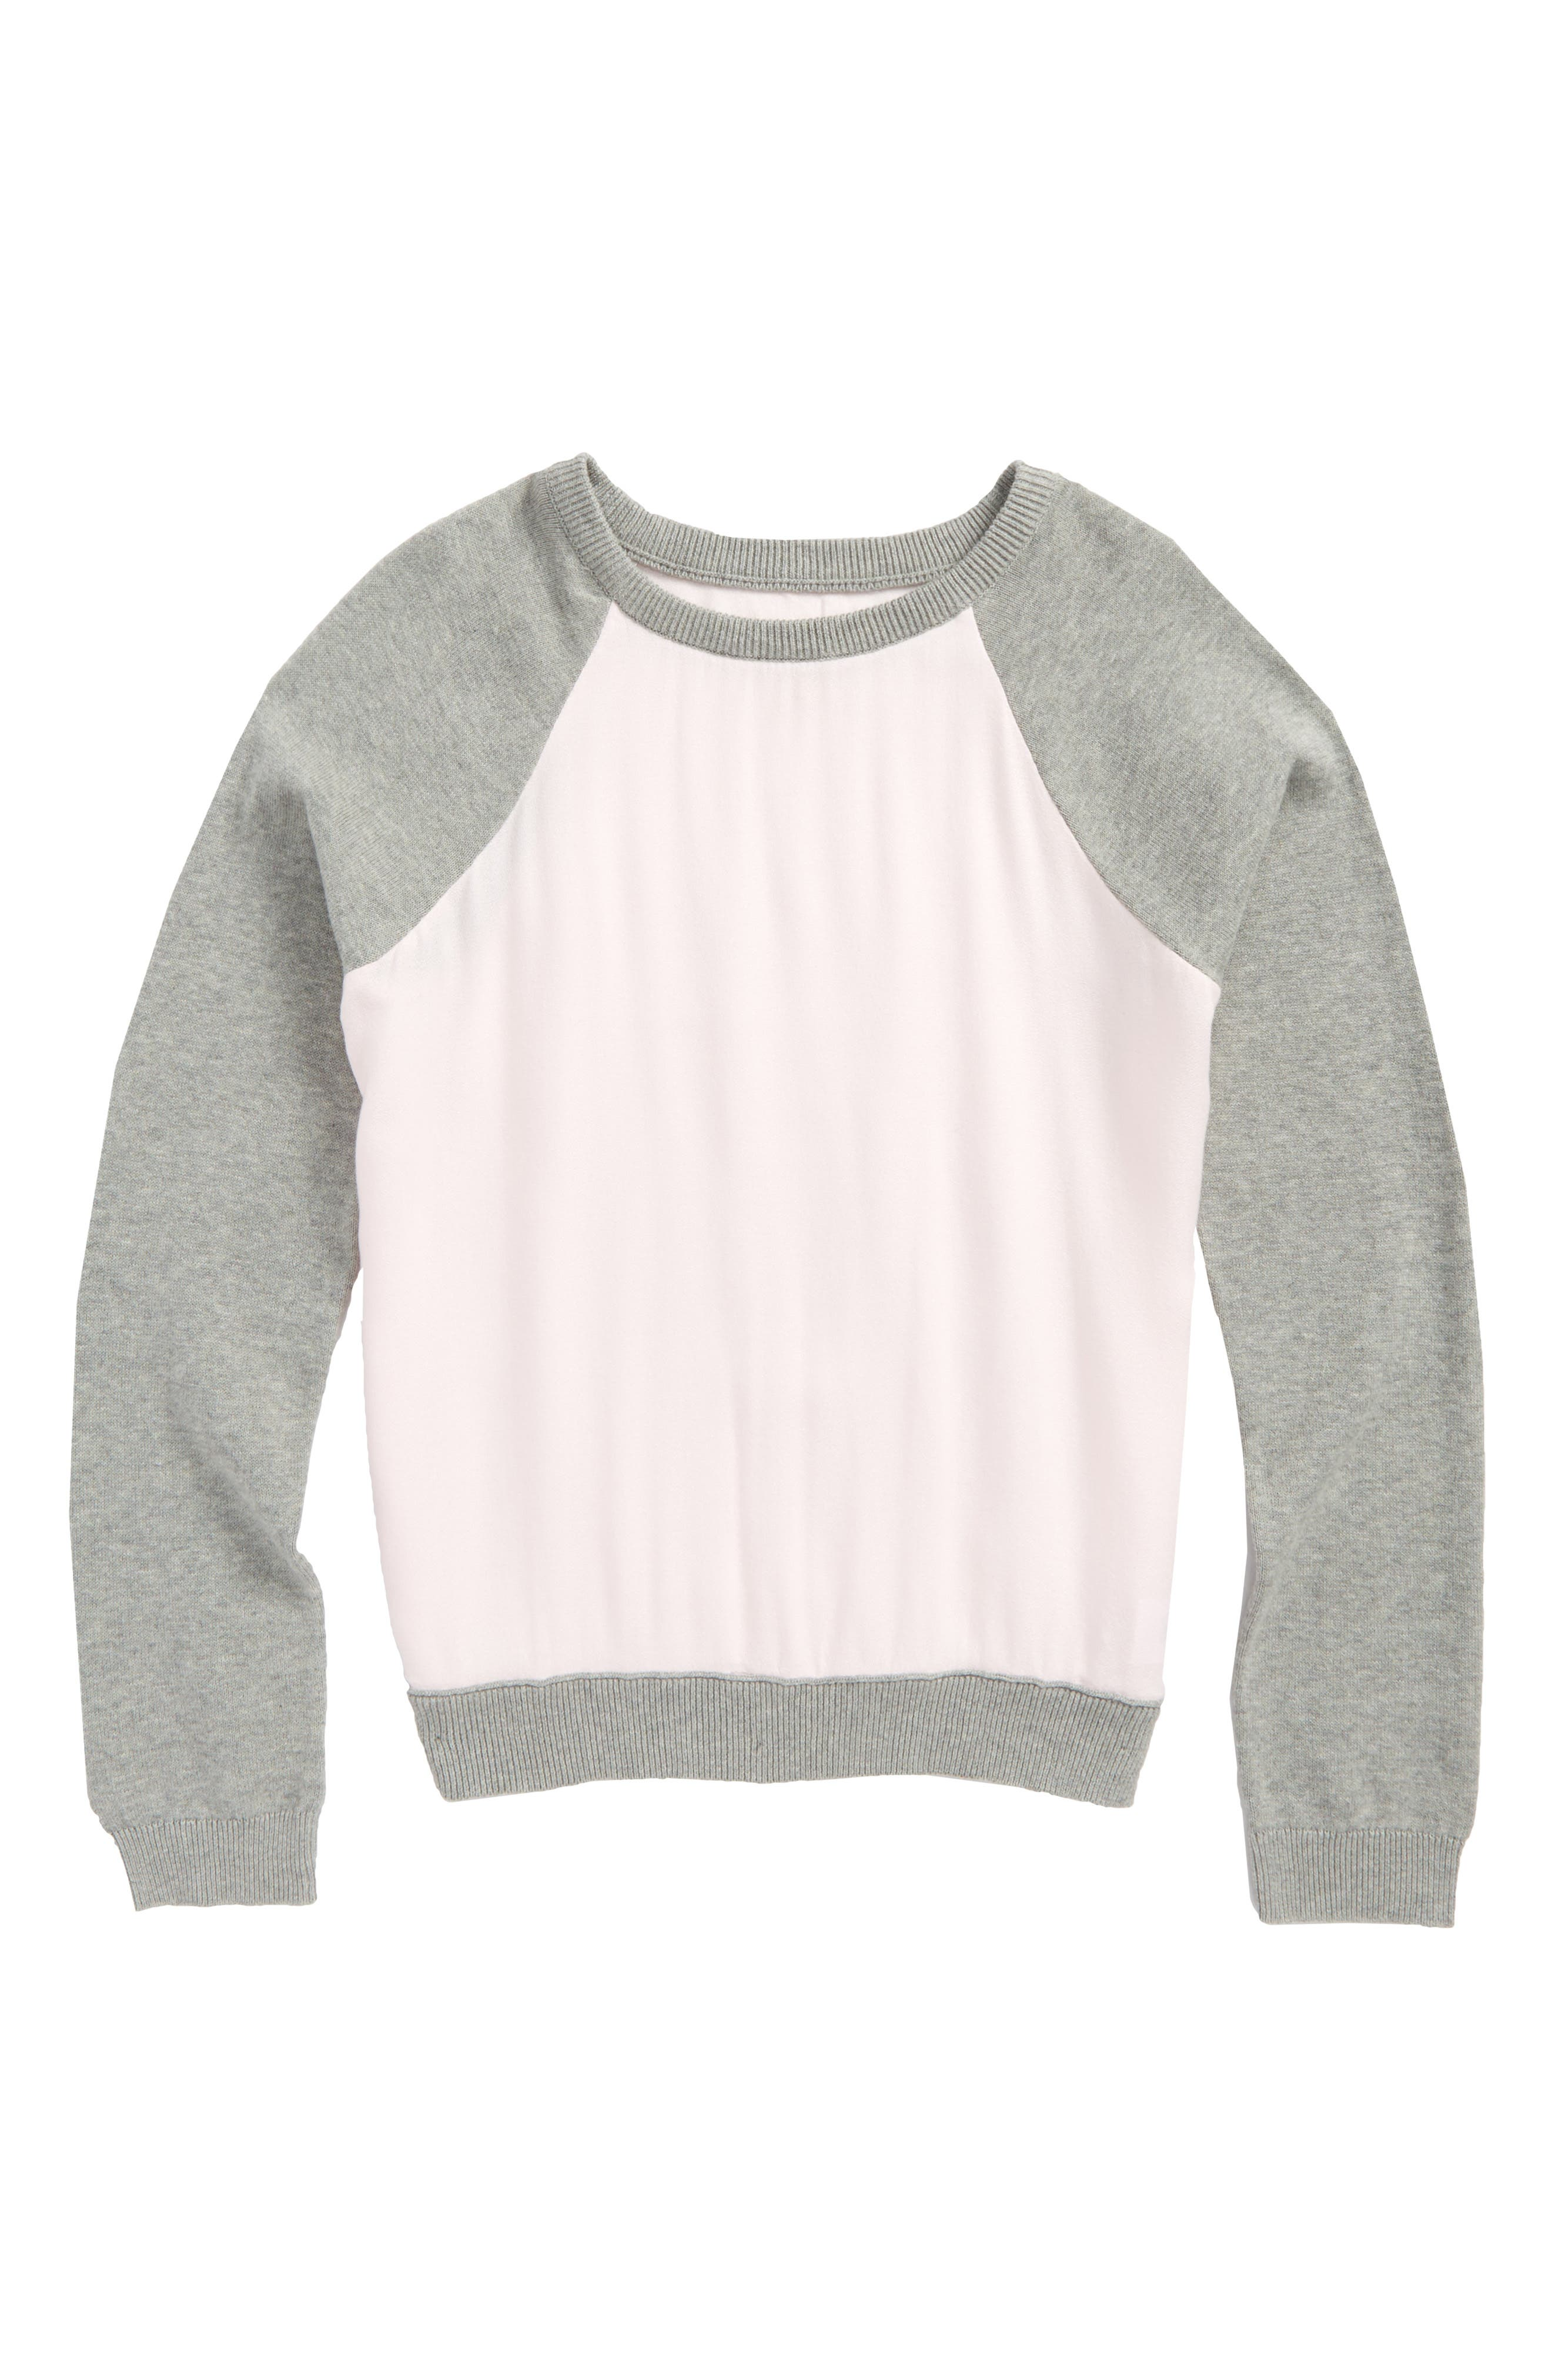 Knit to Woven Sweatshirt,                         Main,                         color, Pink Breath